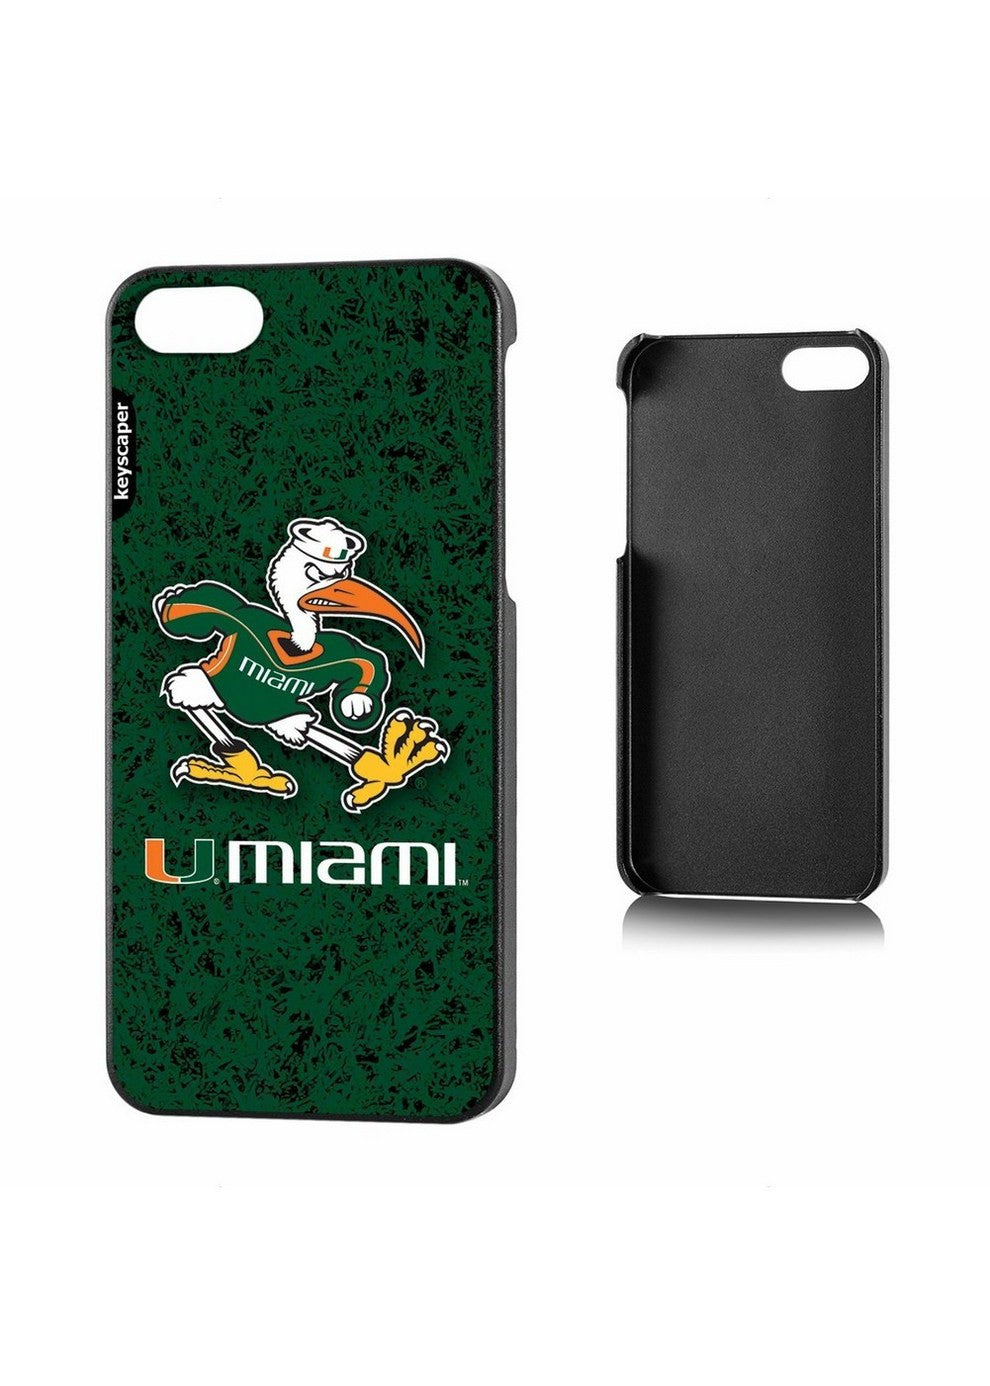 Ncaa Iphone 5 Case - Miami Hurricanes